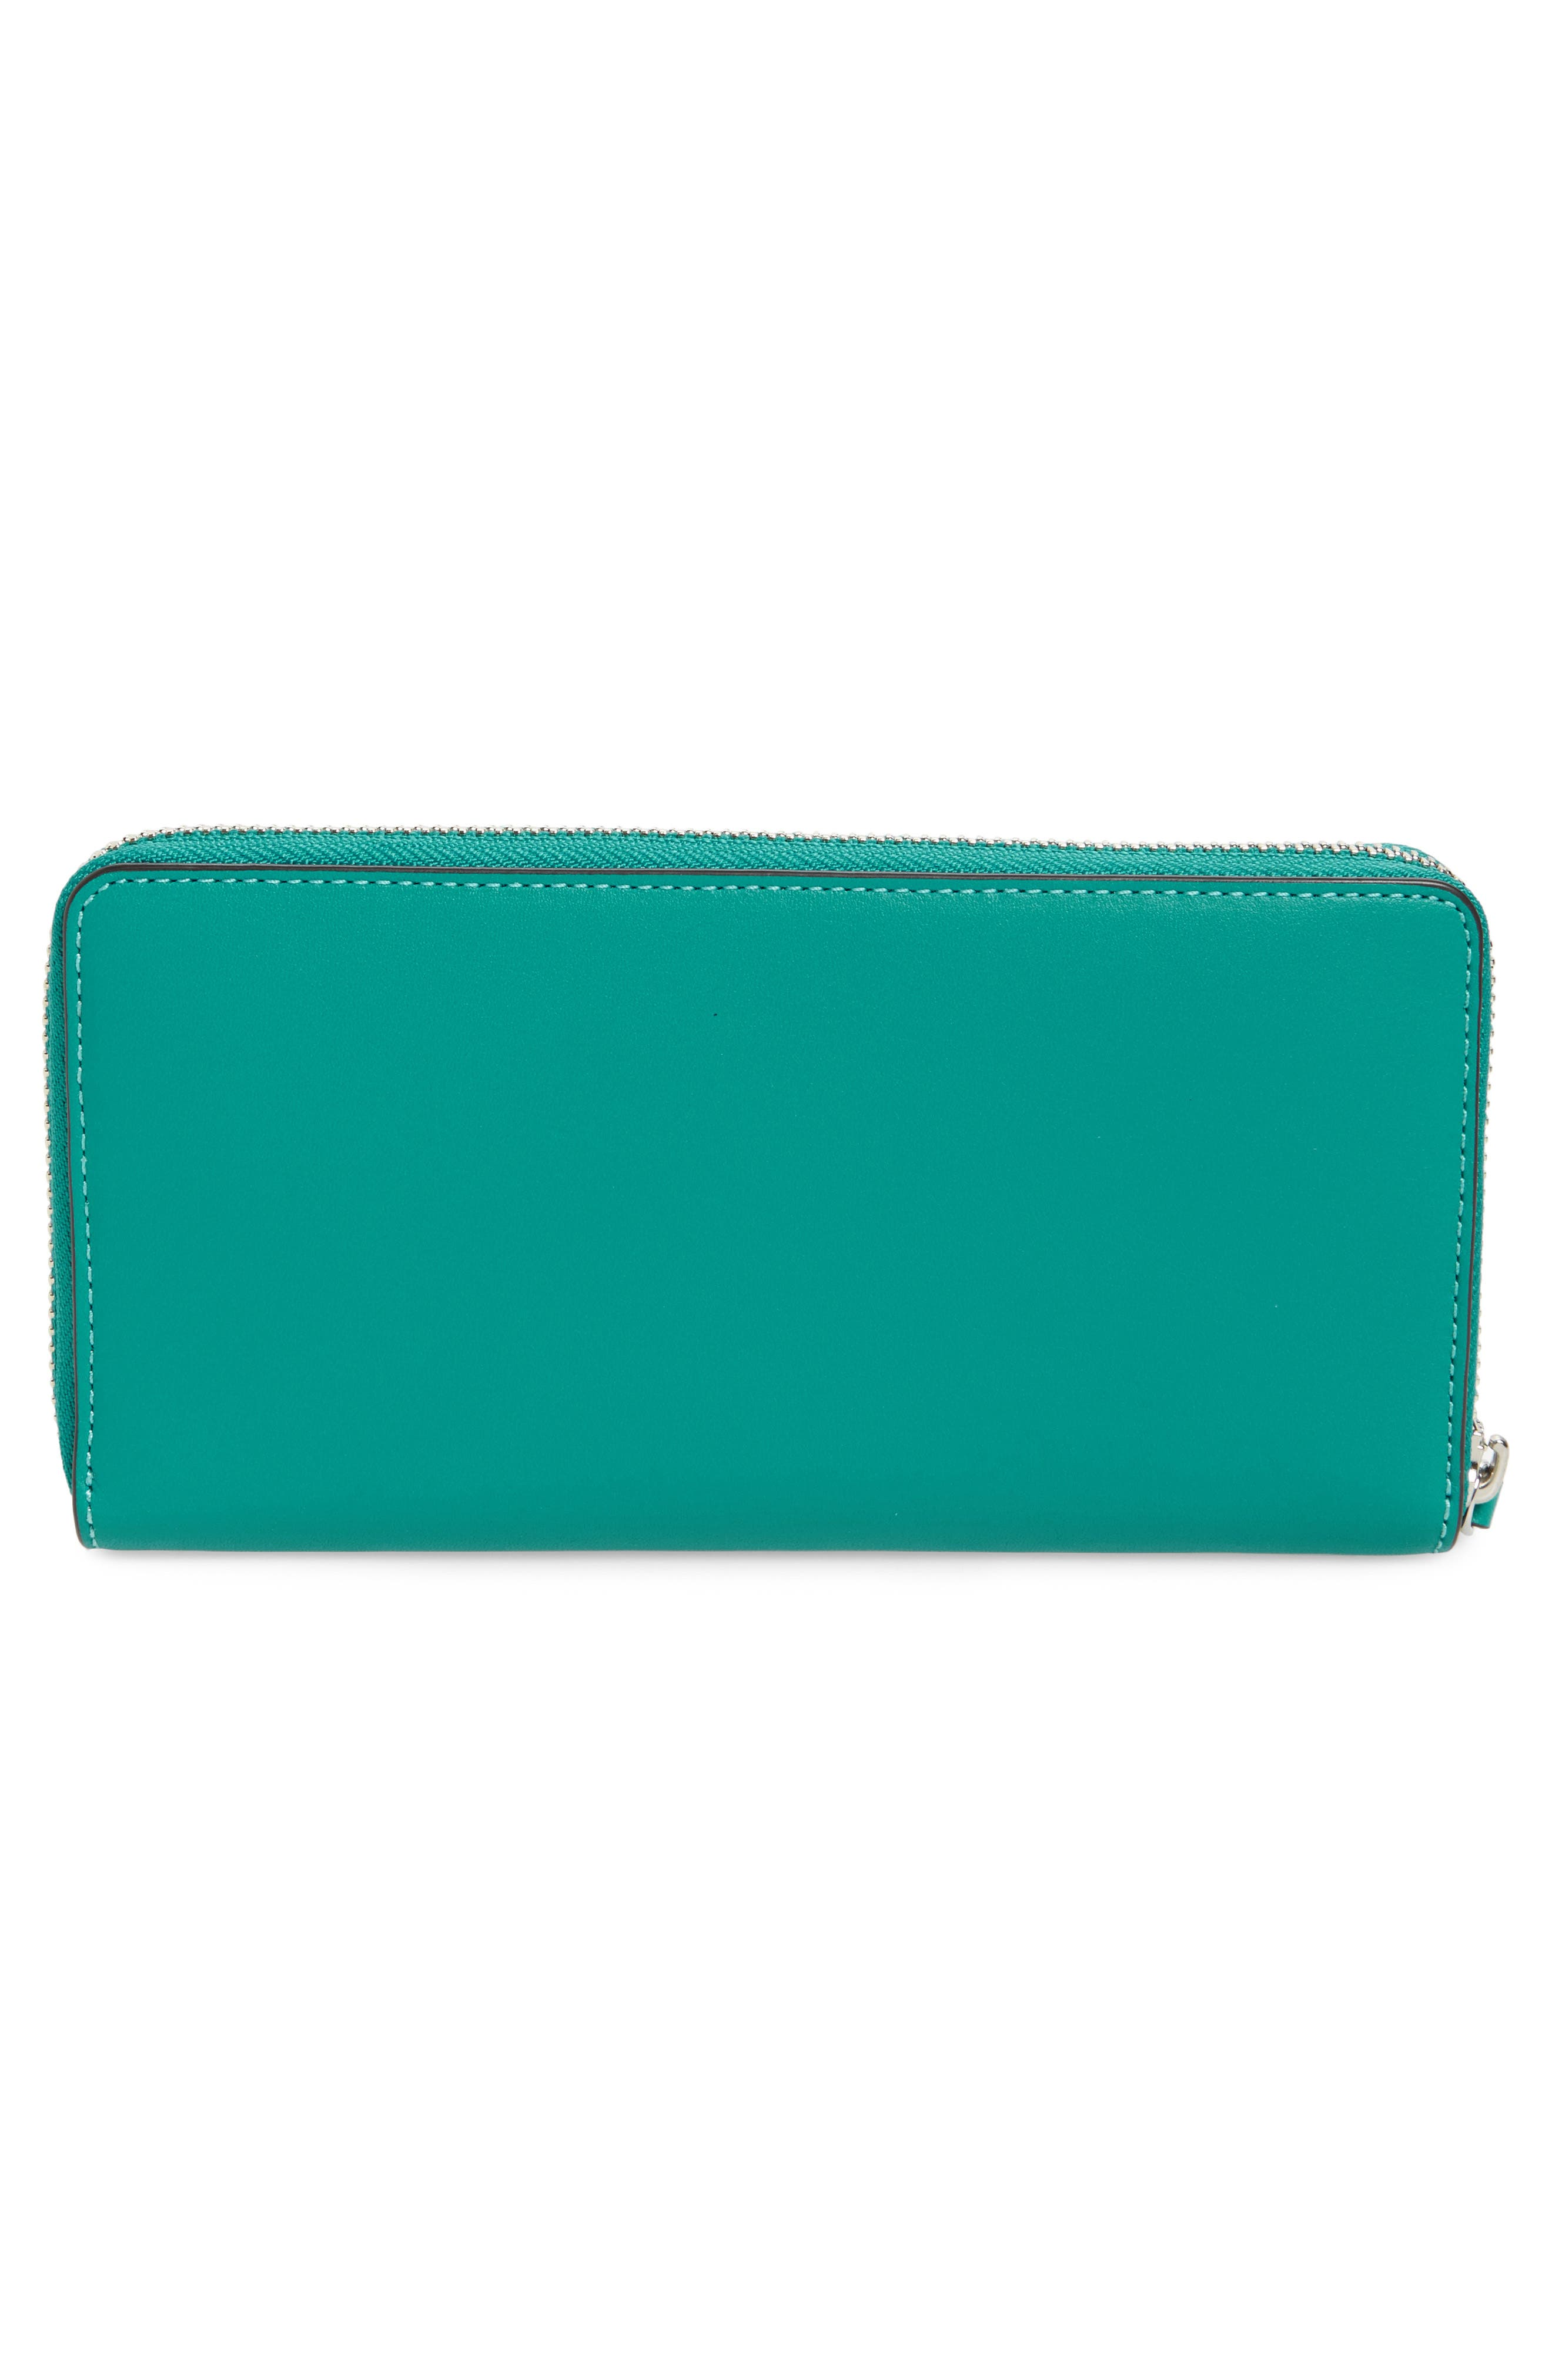 Charlie Leather Continental Wallet,                             Alternate thumbnail 8, color,